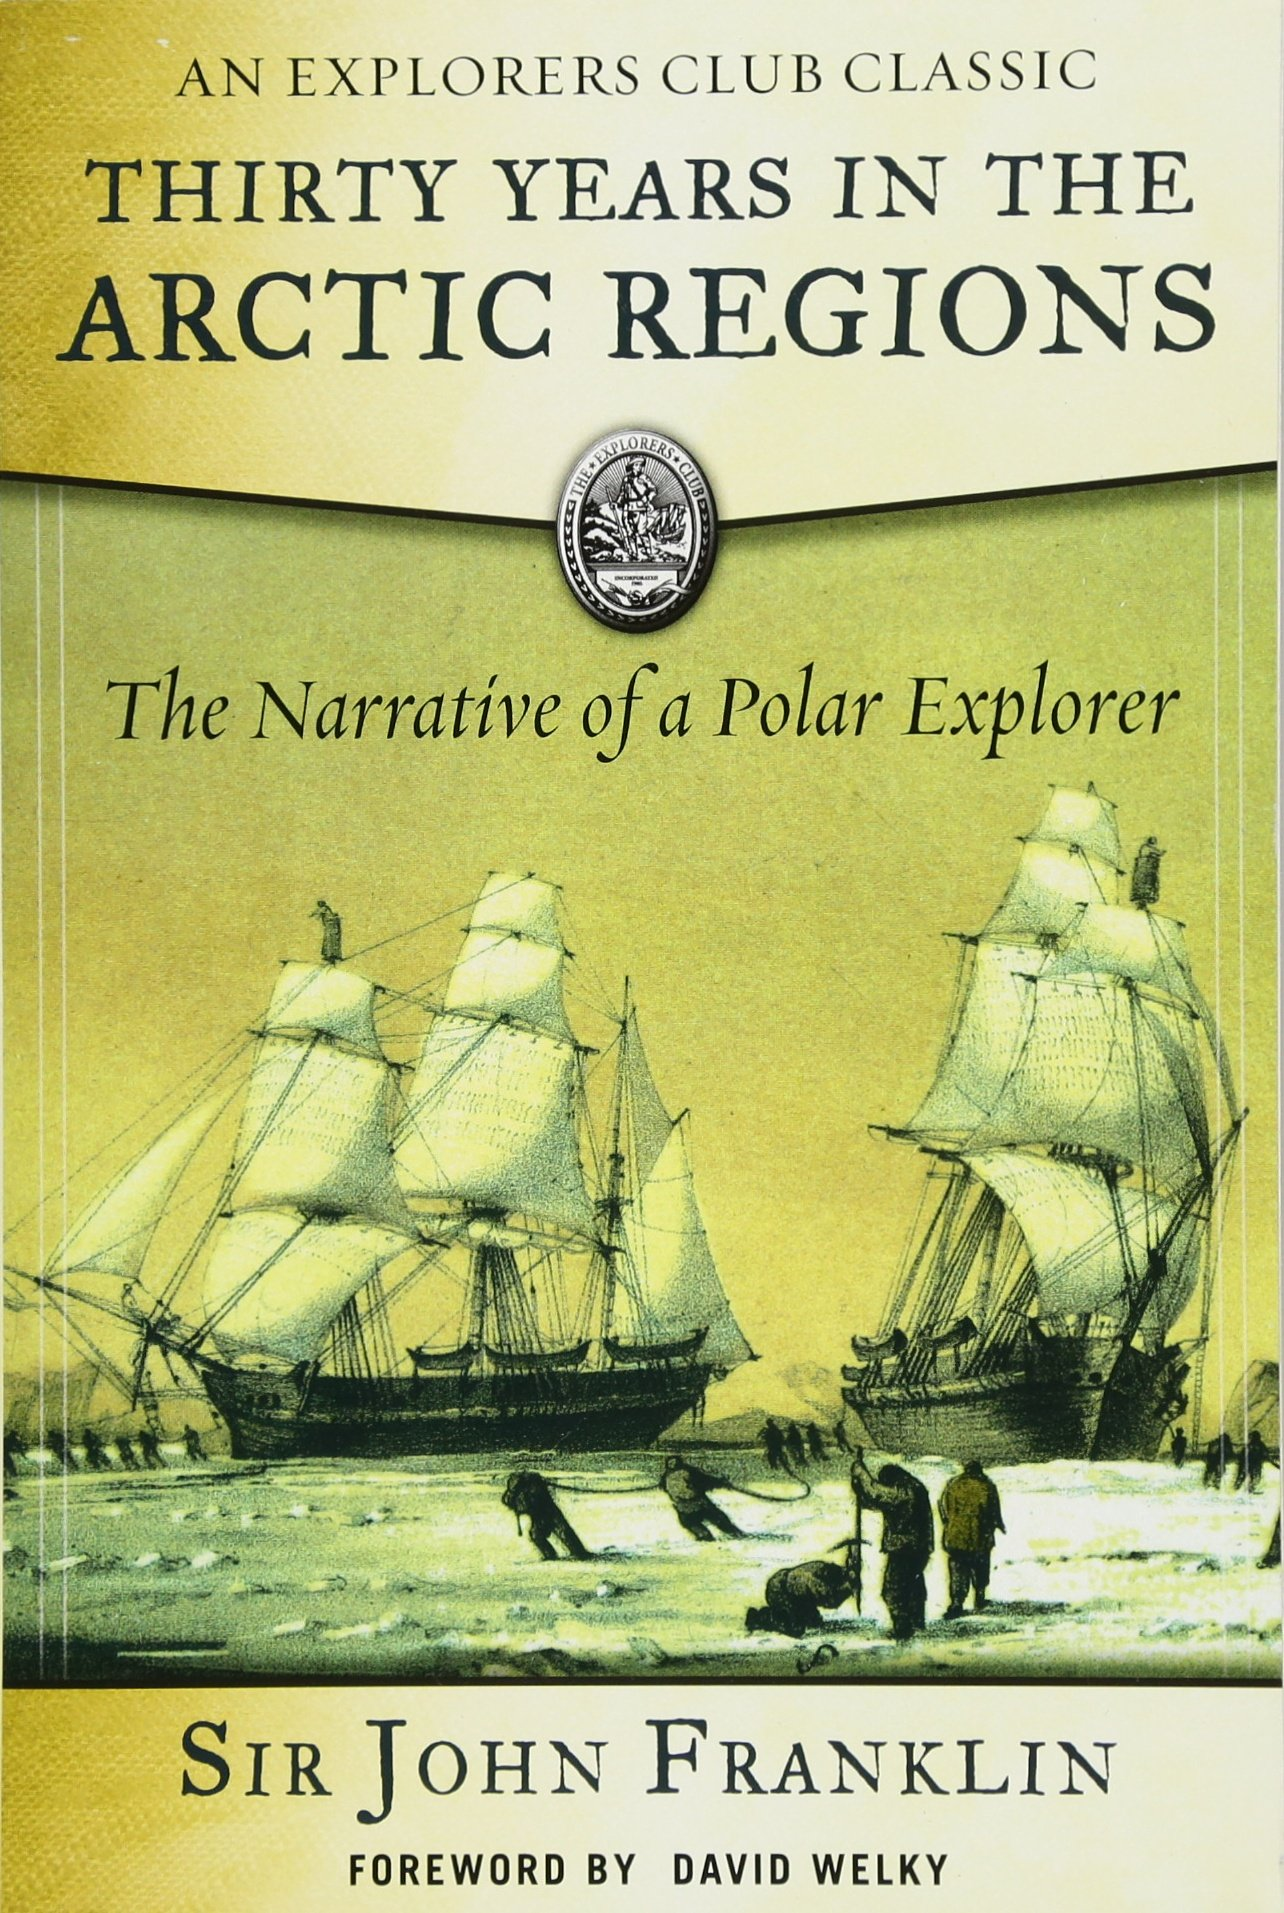 Download Thirty Years in the Arctic Regions: The Narrative of a Polar Explorer (Explorers Club) pdf epub